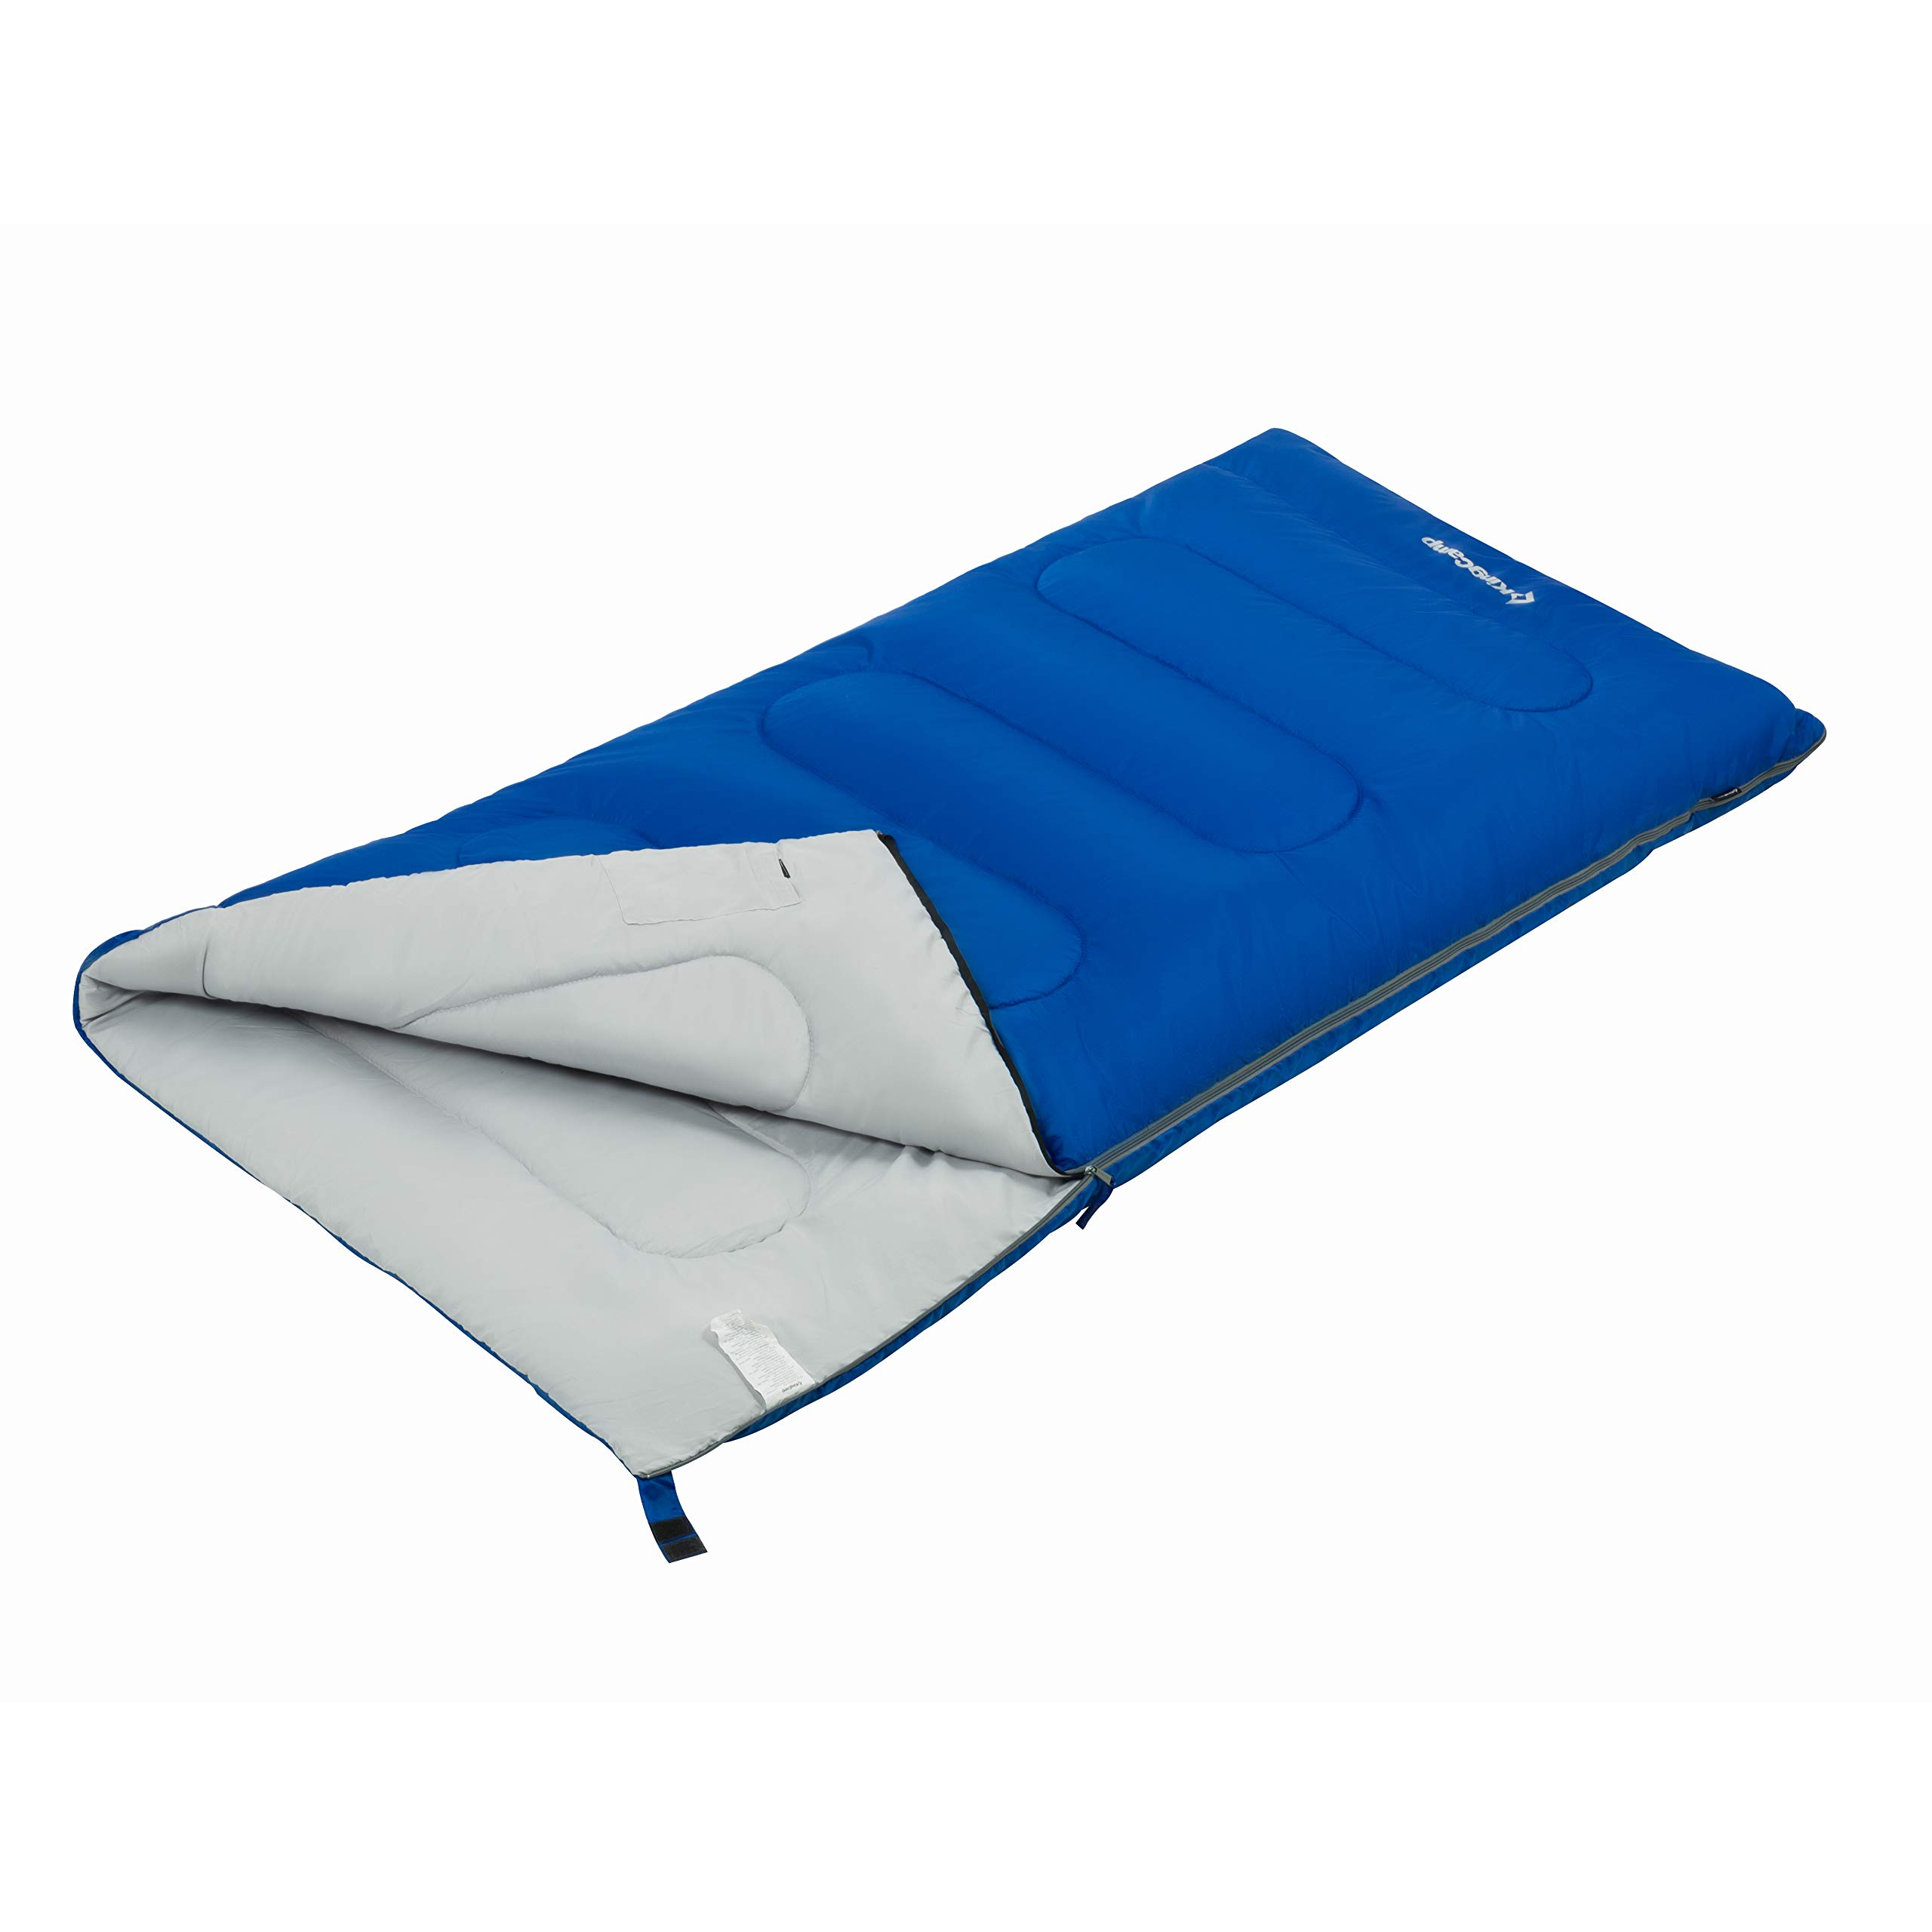 KingCamp XL Oversize Extreme Wide Envelope Adult Sleeping Bag 10.4 F/-12C For Camping Hiking